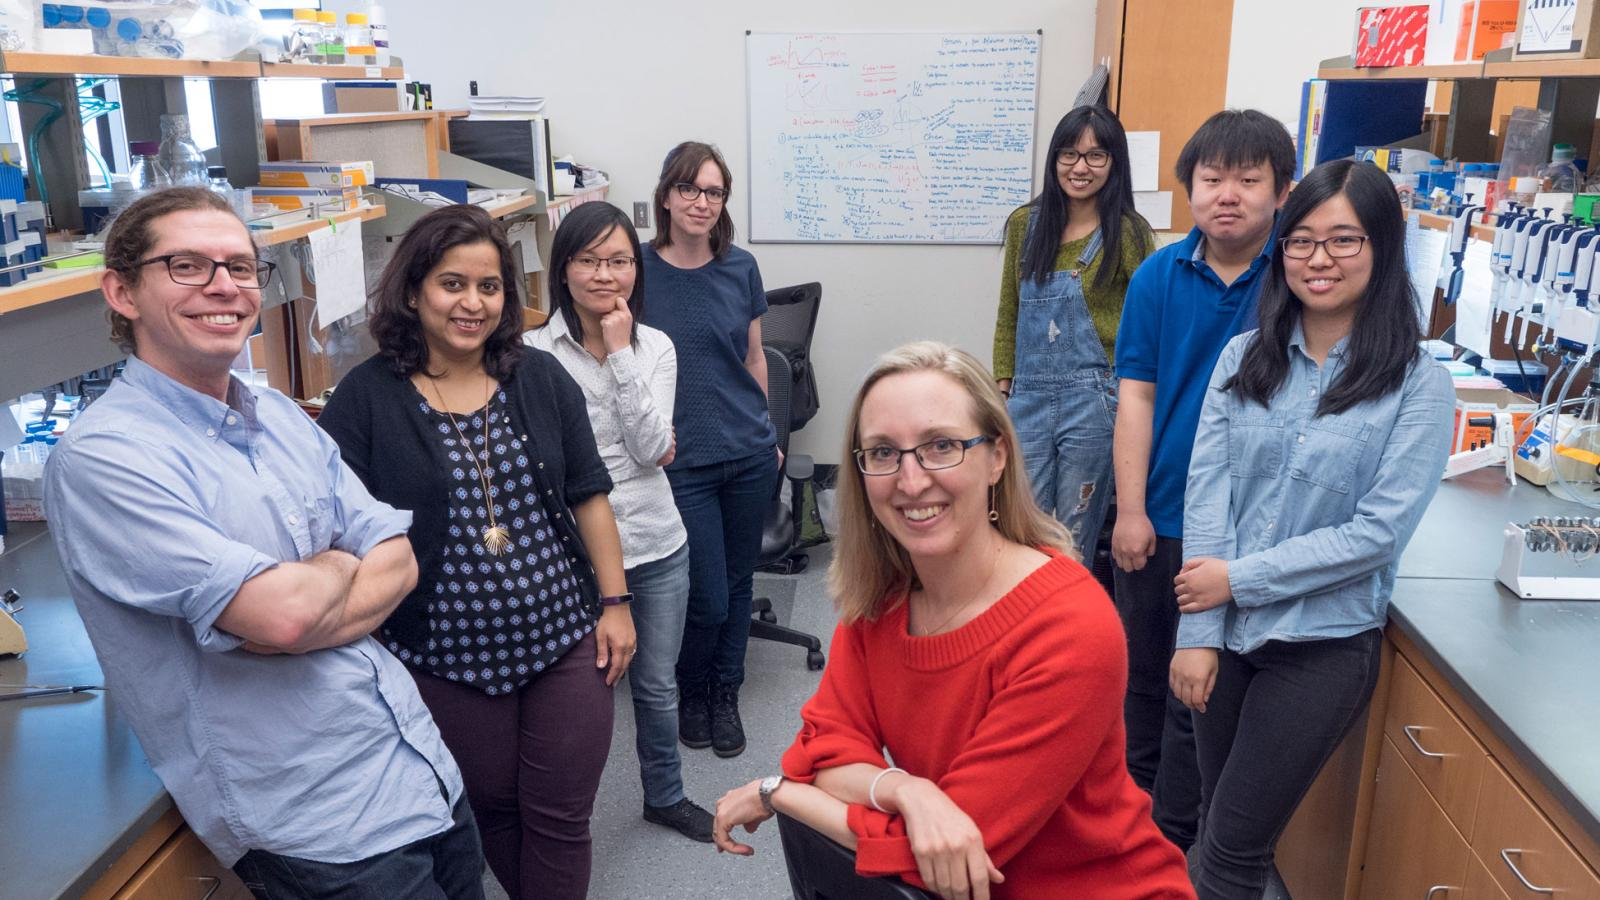 Spencer Lab Members: Justin (left), Mansi, Mingwei, Claire, Sabrina, Chen, Chengzhe, Yao